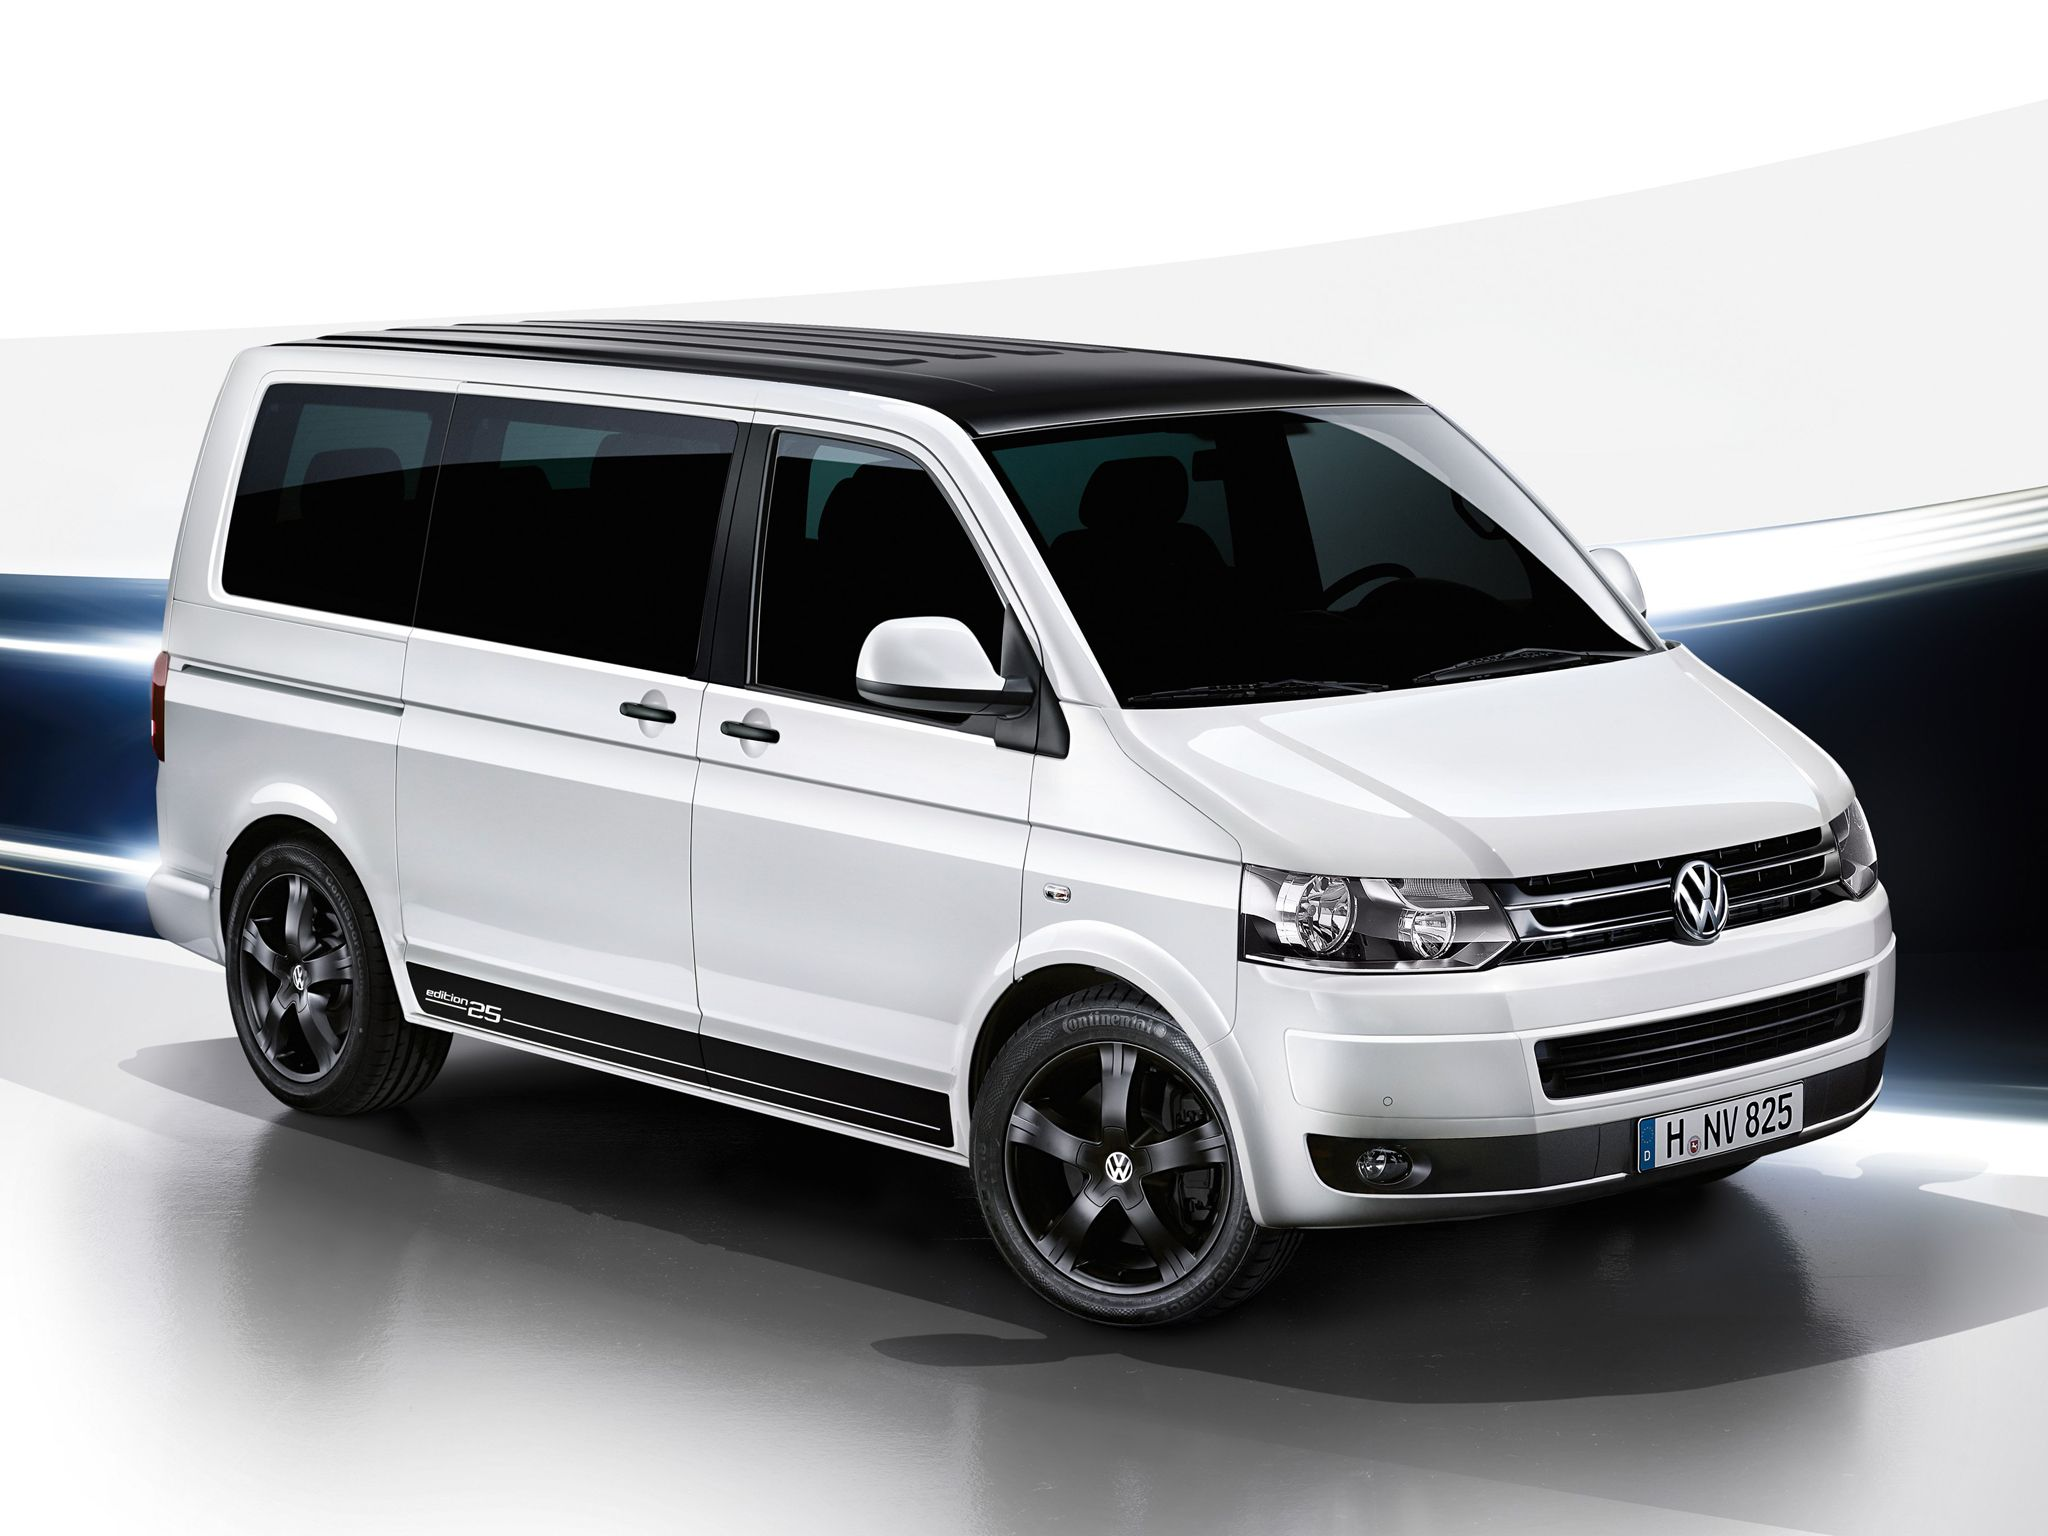 volkswagen t5 multivan edition 25 volkswagen pinterest vw t5 volkswagen and volkswagen. Black Bedroom Furniture Sets. Home Design Ideas